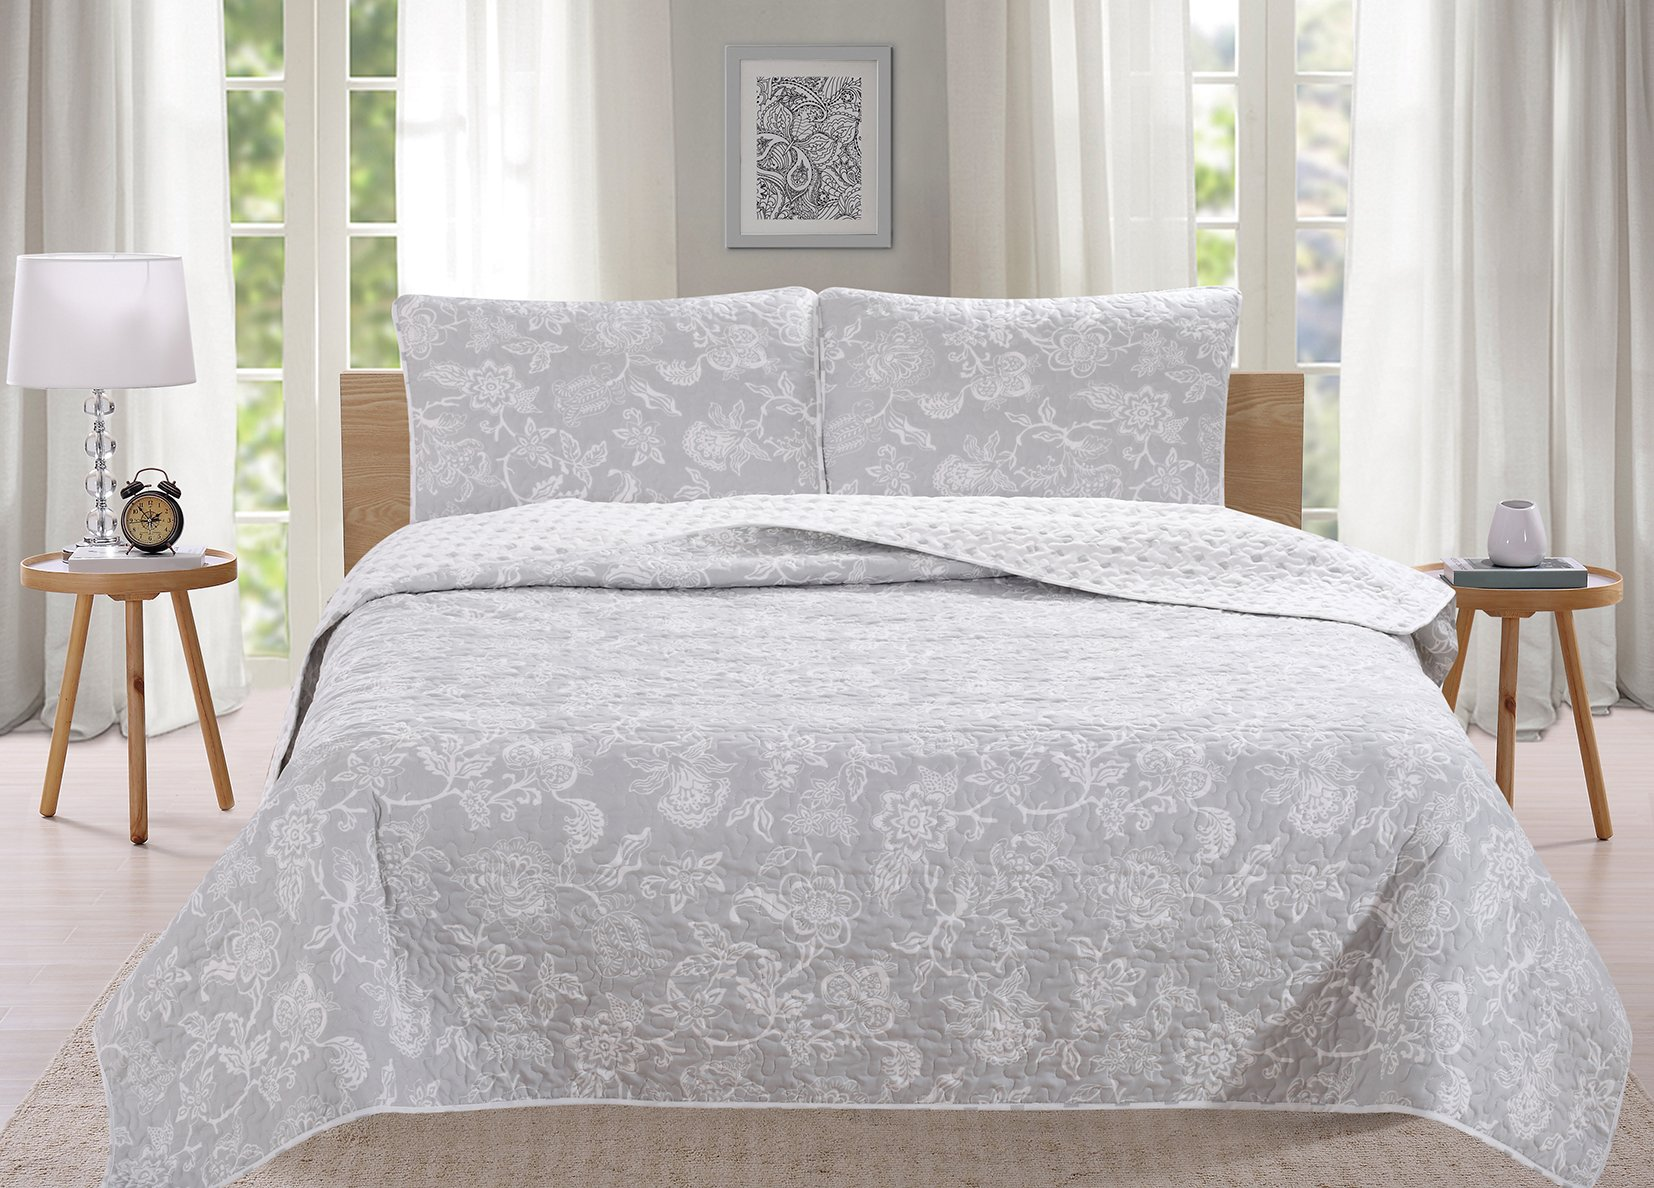 Great Bay Home 3-Piece Reversible Quilt Set with Shams. All-Season Bedspread with Floral Print Pattern in Contemporary Colors. Emma Collection By Brand. (King, Grey) by Great Bay Home (Image #5)